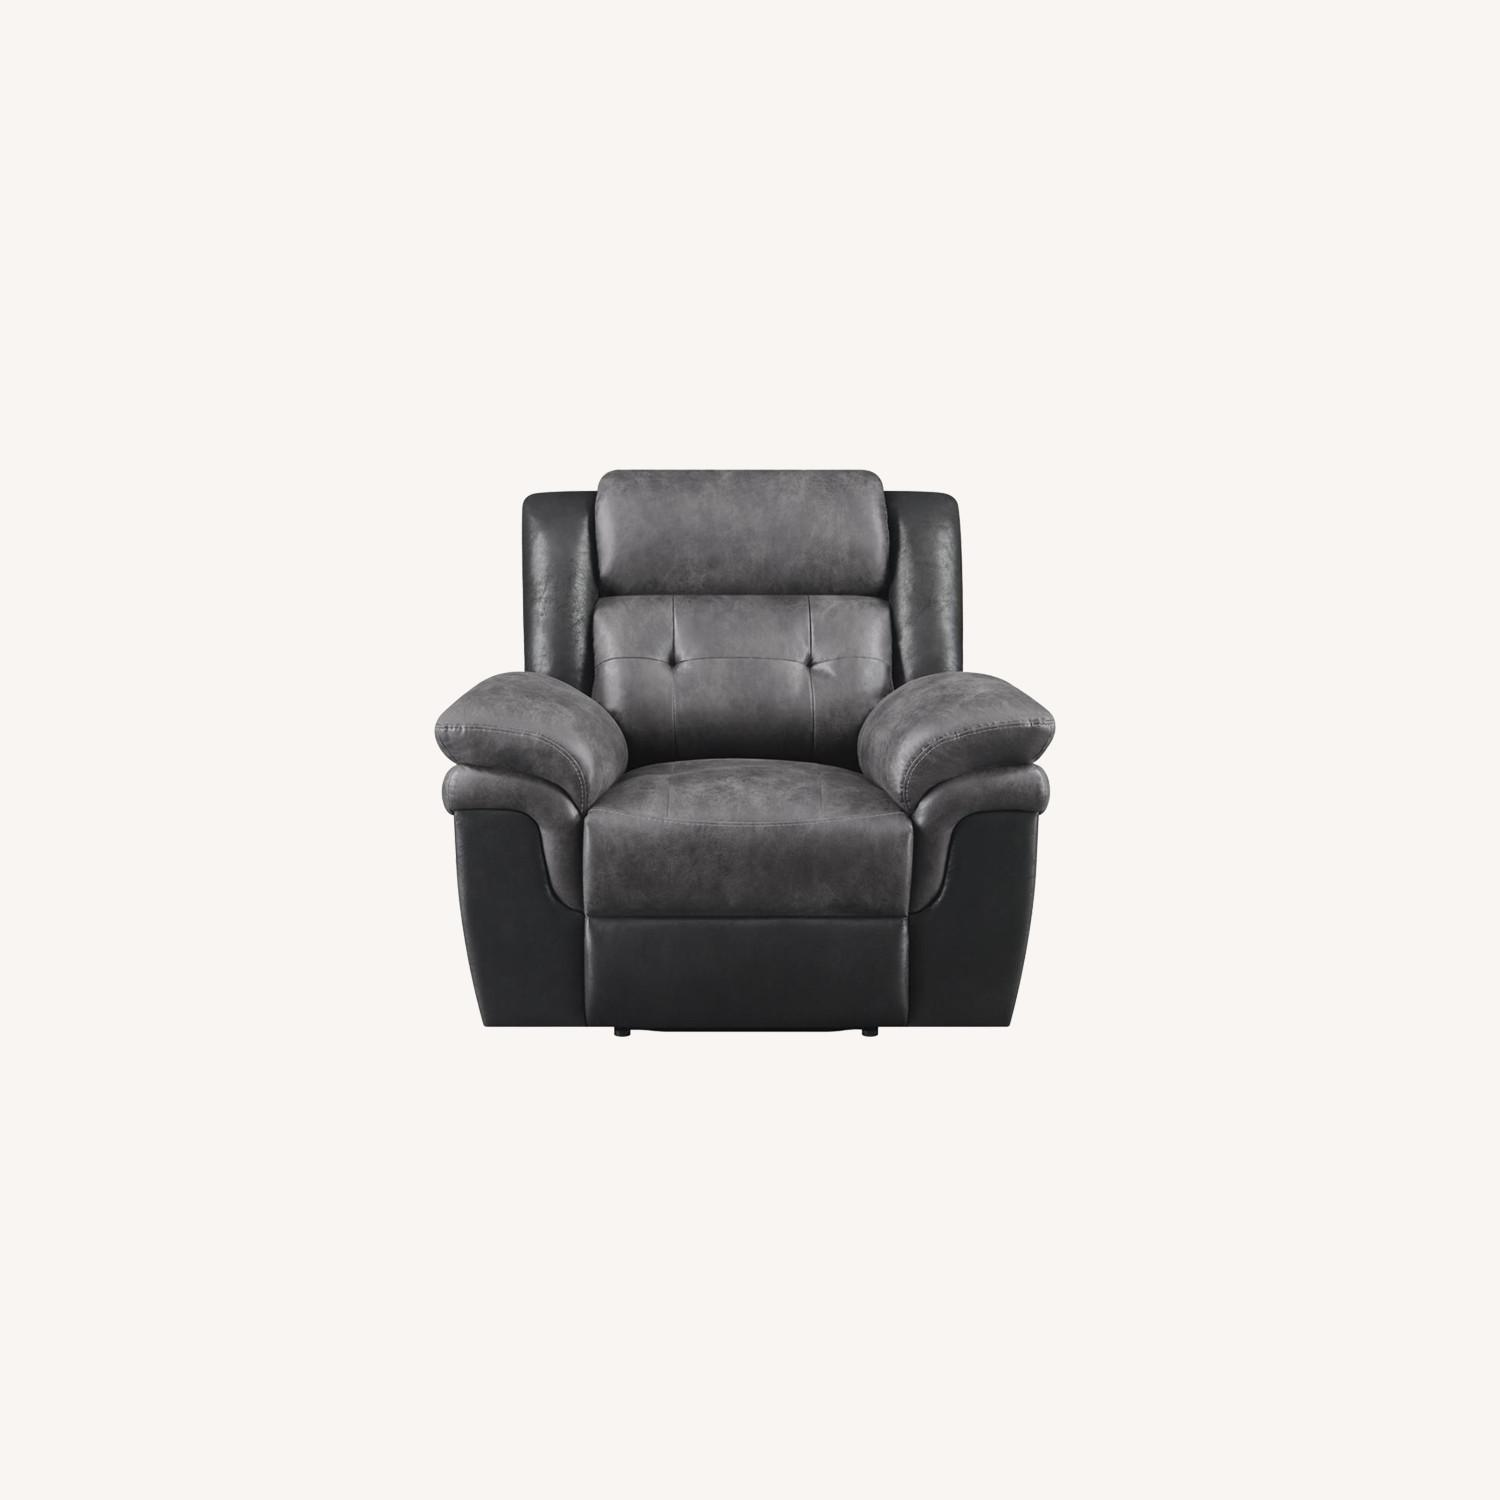 Recliner In Two-Tone Charcoal & Black Upholstery - image-9